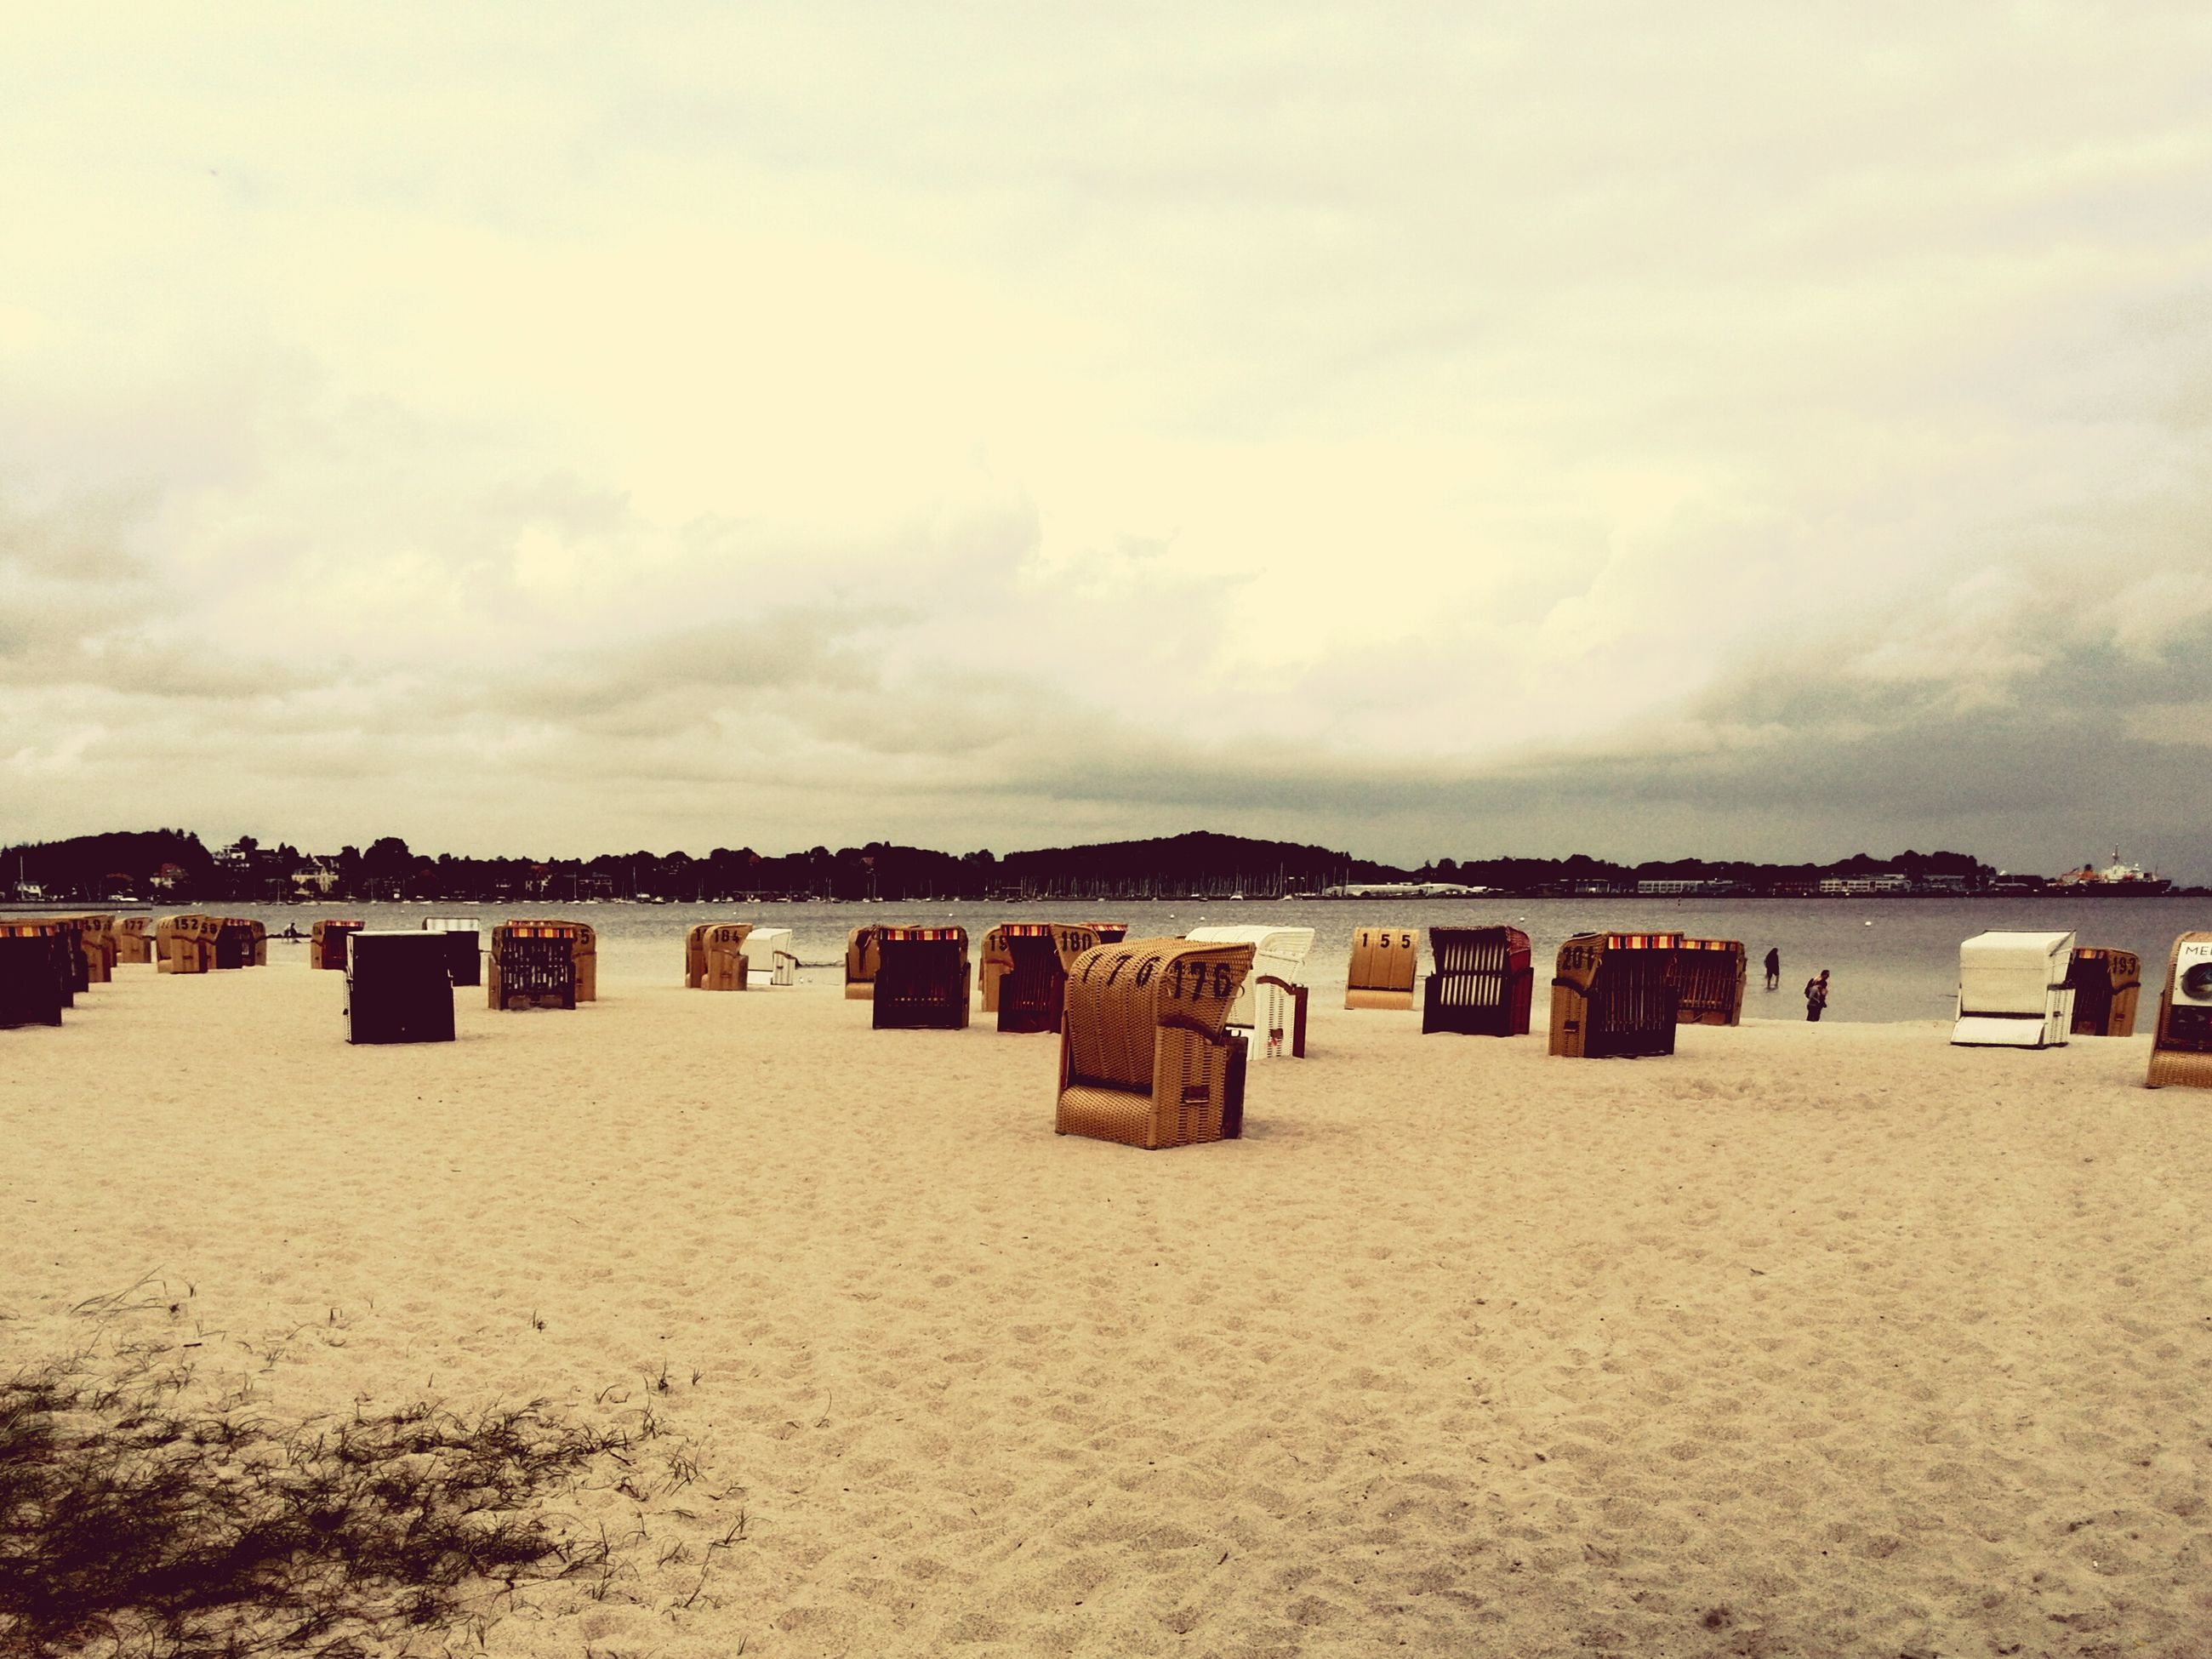 beach, sand, sea, sky, water, shore, in a row, tranquil scene, tranquility, scenics, cloud - sky, nature, beauty in nature, day, vacations, cloud, cloudy, outdoors, travel destinations, tourism, idyllic, side by side, coastline, no people, repetition, non-urban scene, remote, ocean, arrangement